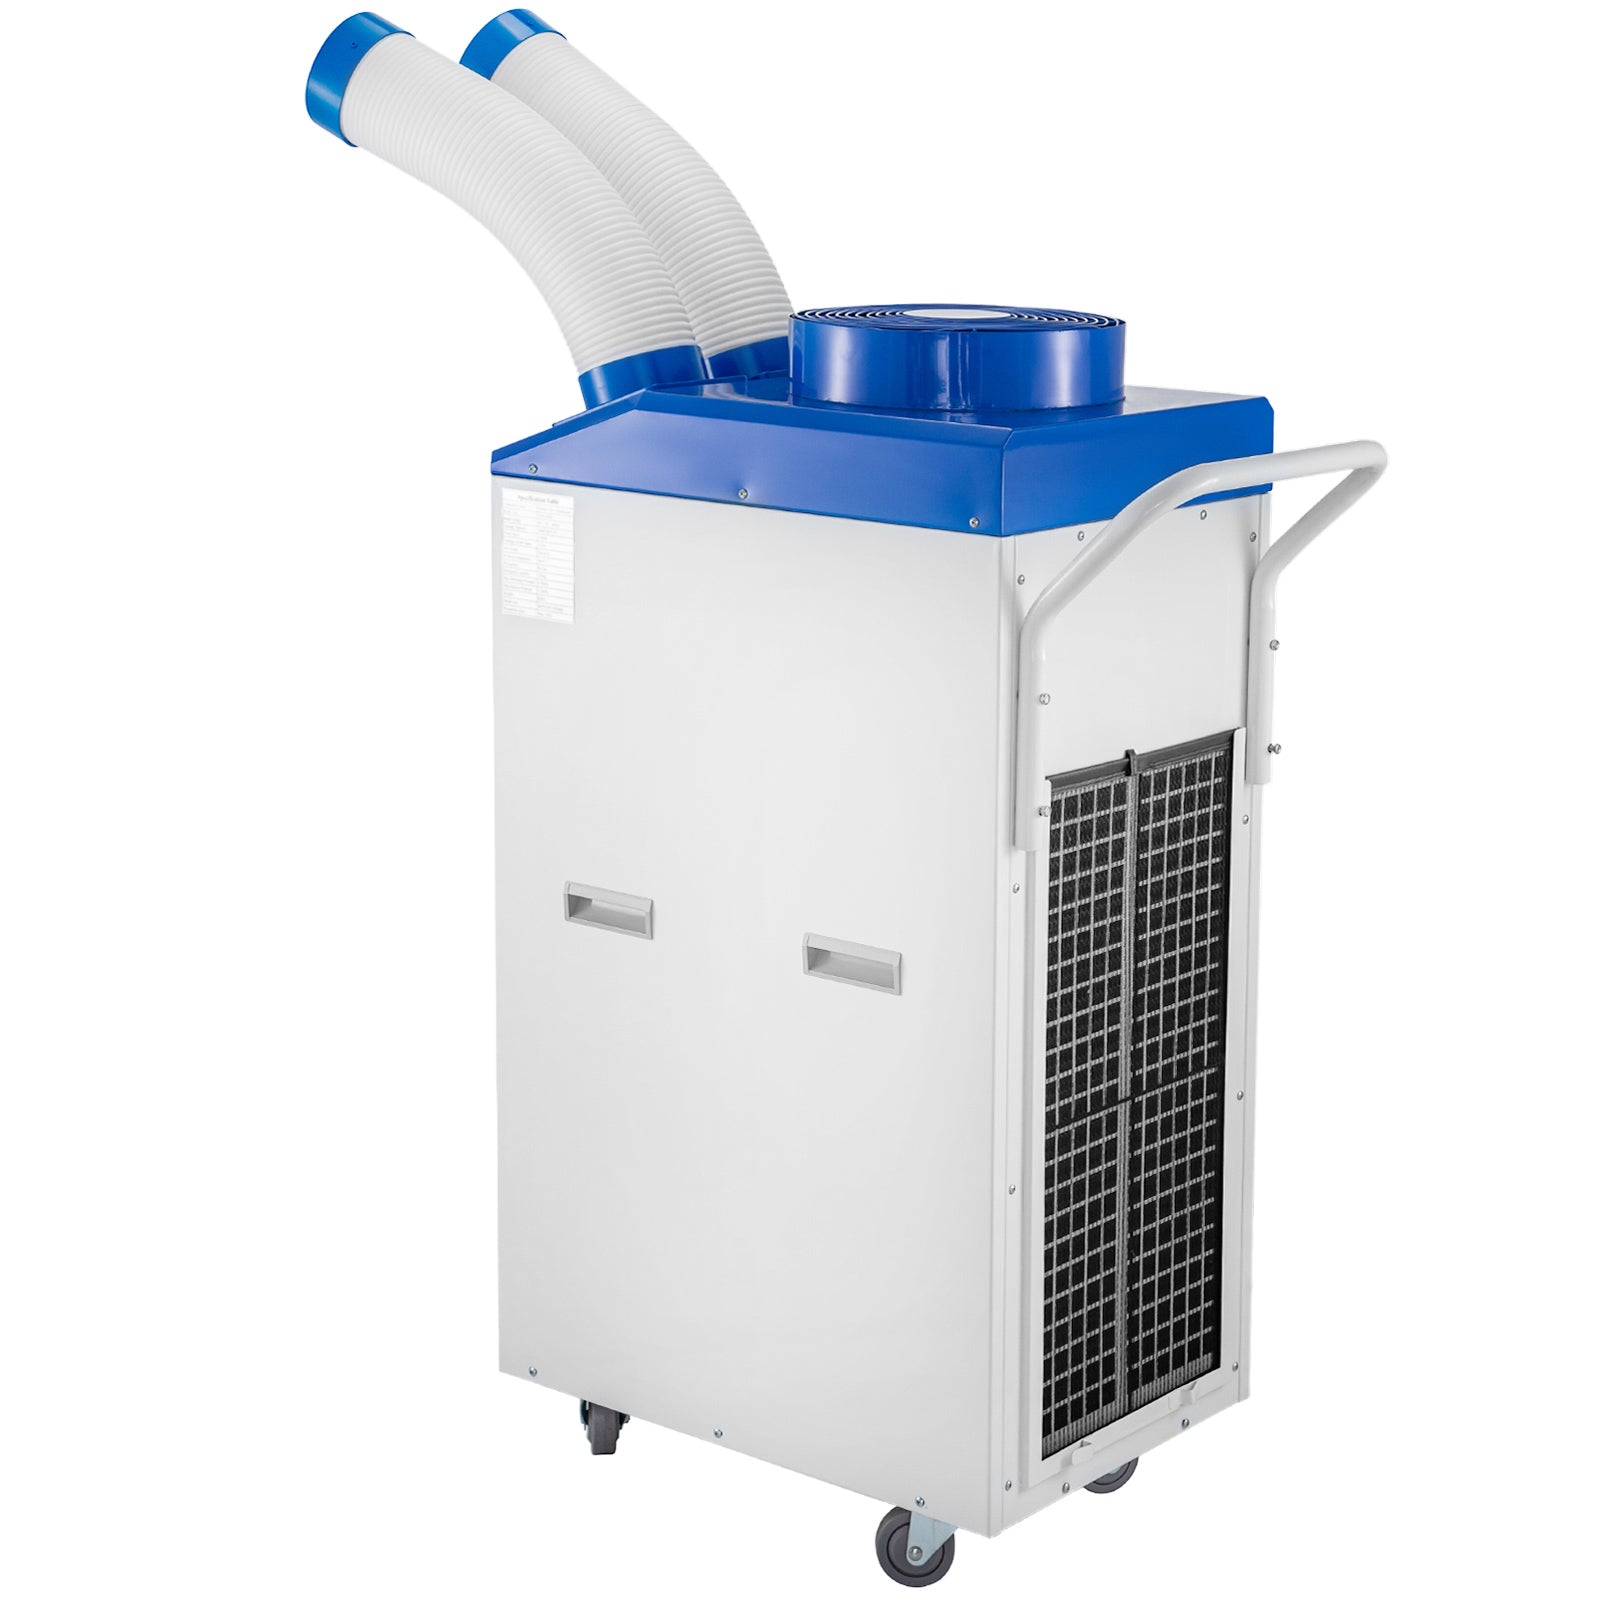 15000btu/h Industrial Air Conditioner Double Pipe Portable Air Cooler 1700w